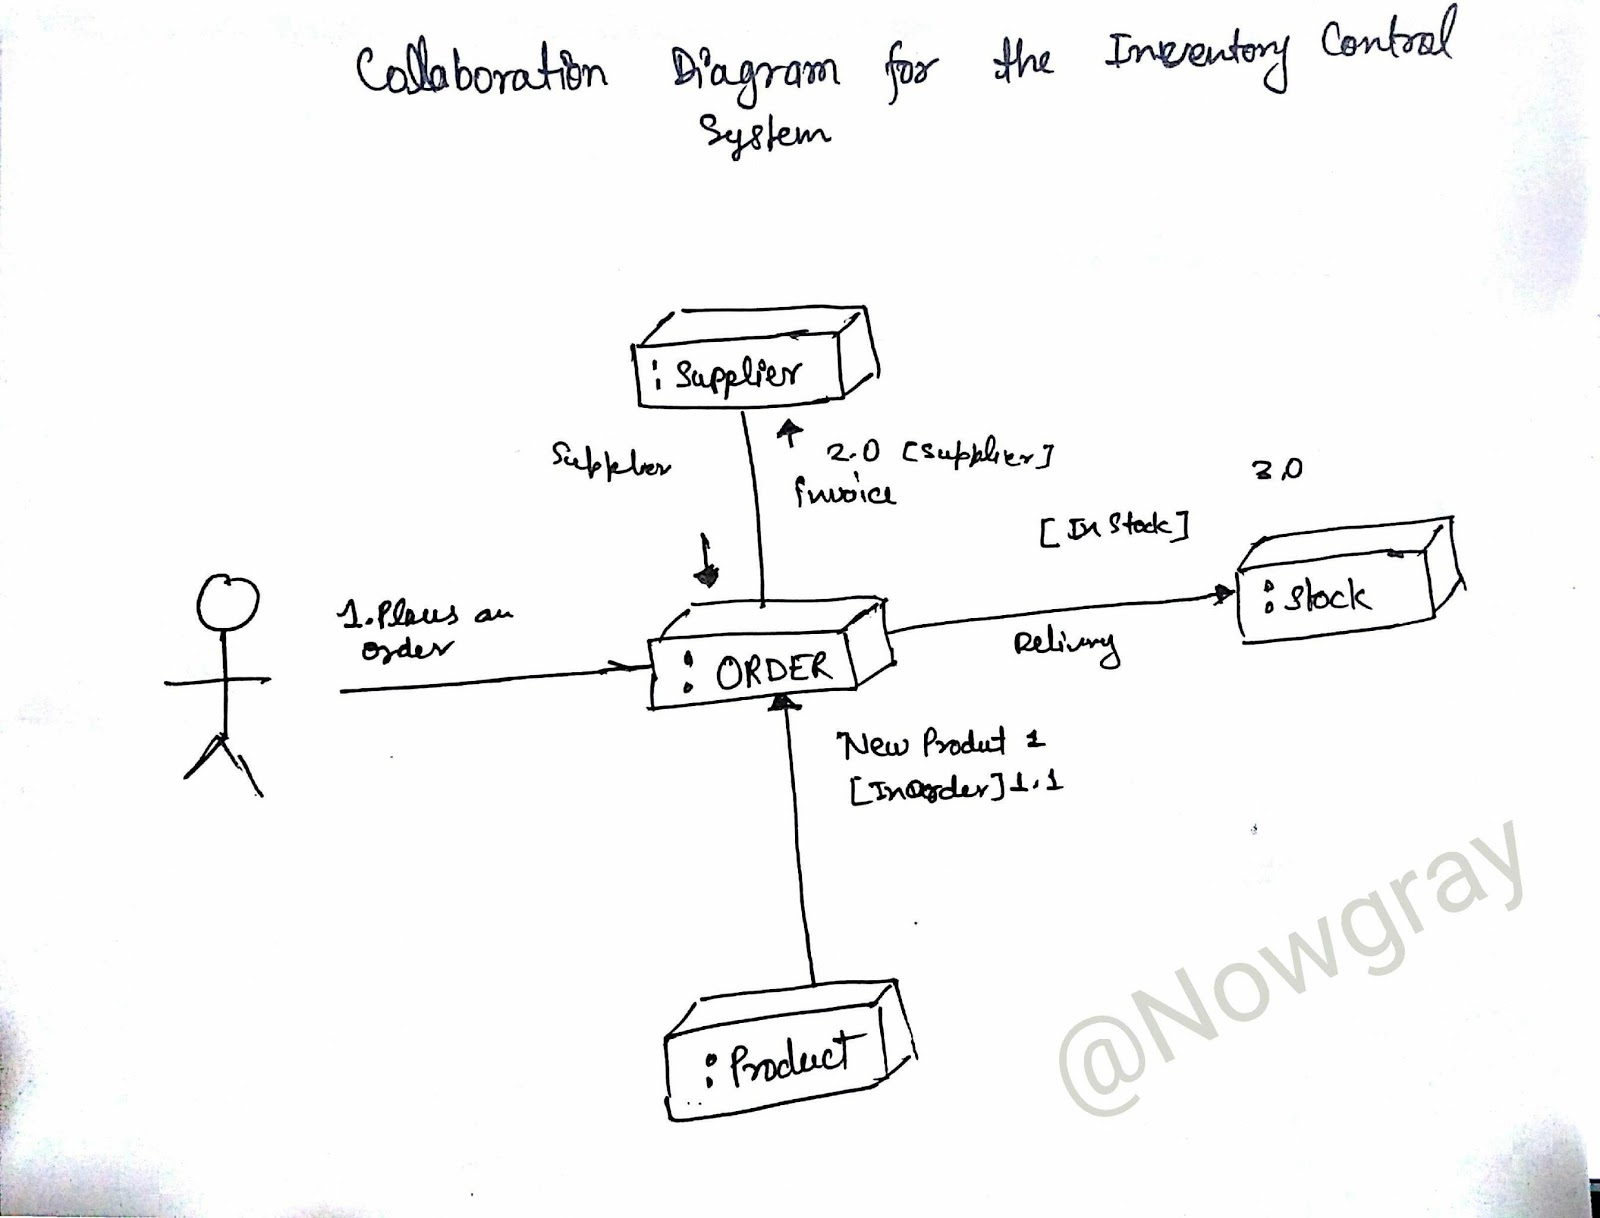 Collaboration diagram for inventory control system ignou group collaboration diagram for inventory control system pooptronica Choice Image